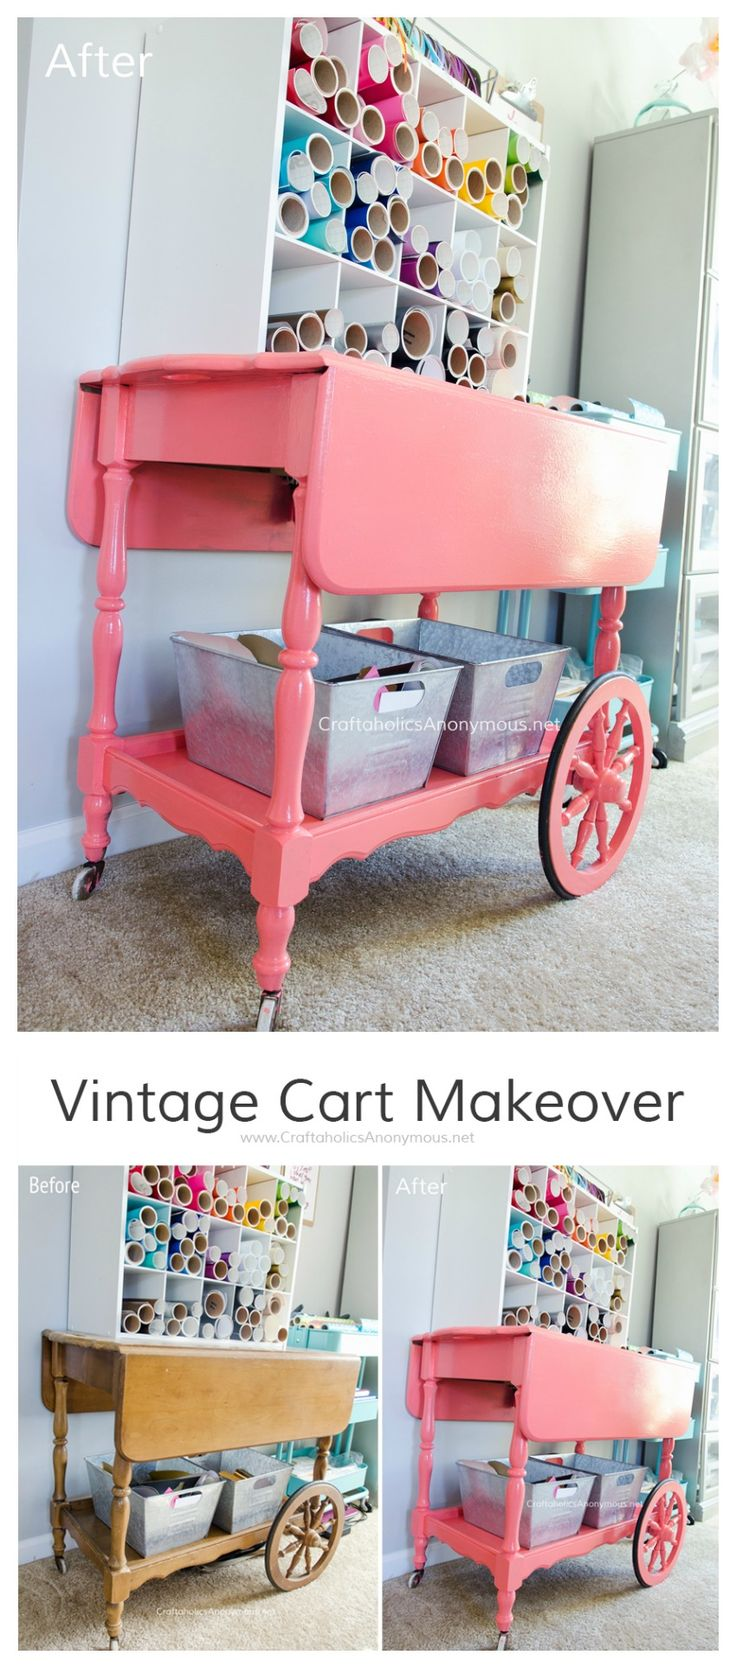 Craftaholics Anonymous® | DIY Vintage Cart Makeover: old furniture idea for new decor!